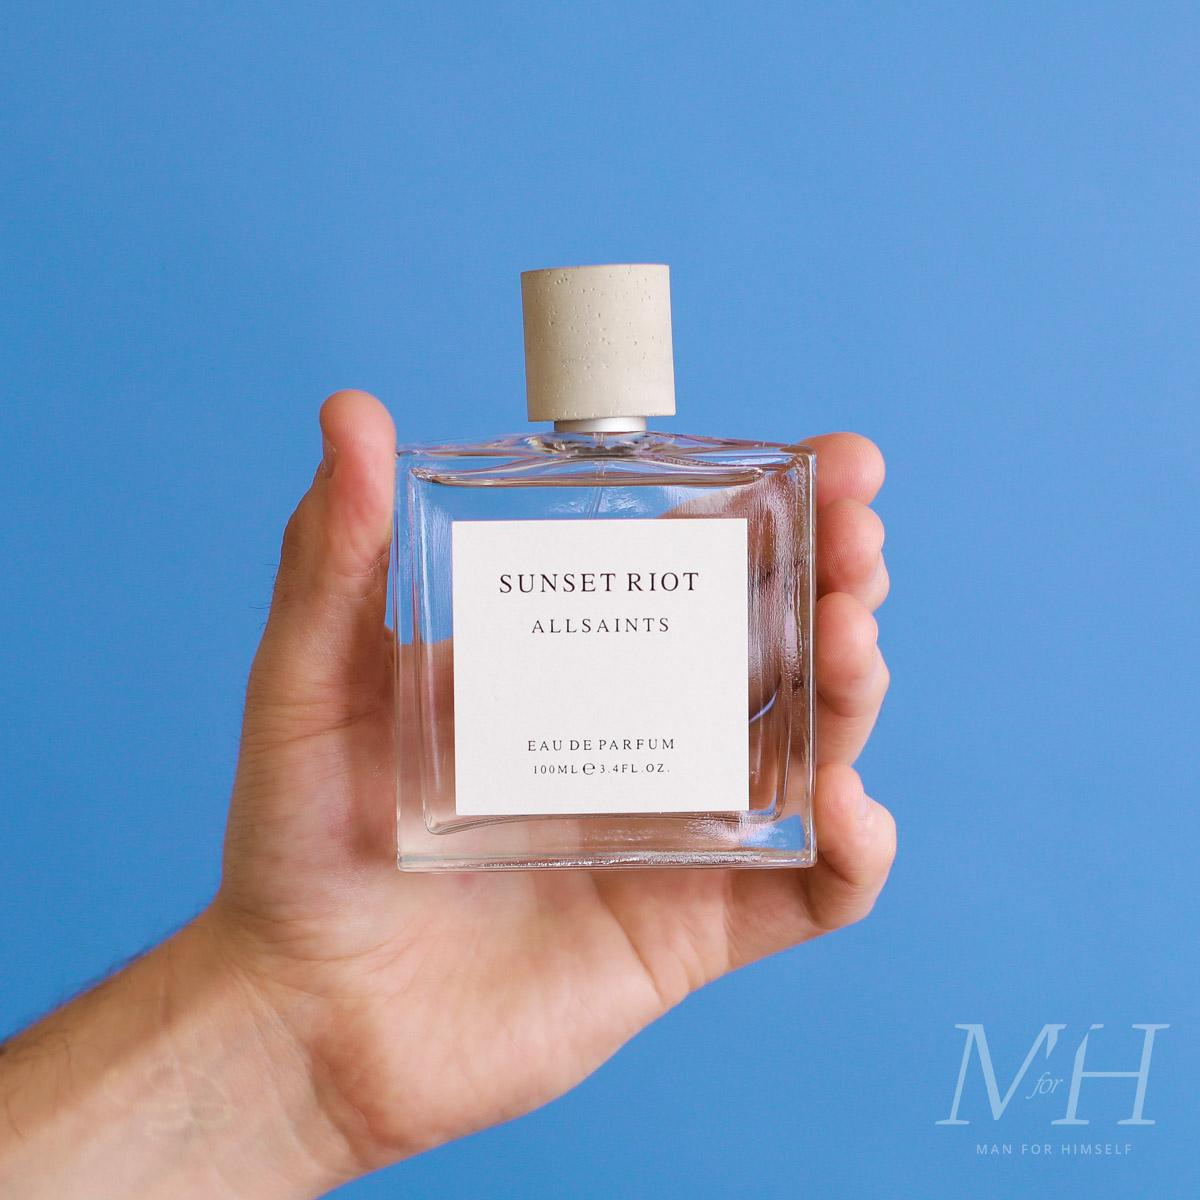 all-saints-sunset-riot-product-fragrance-review-man-for-himself